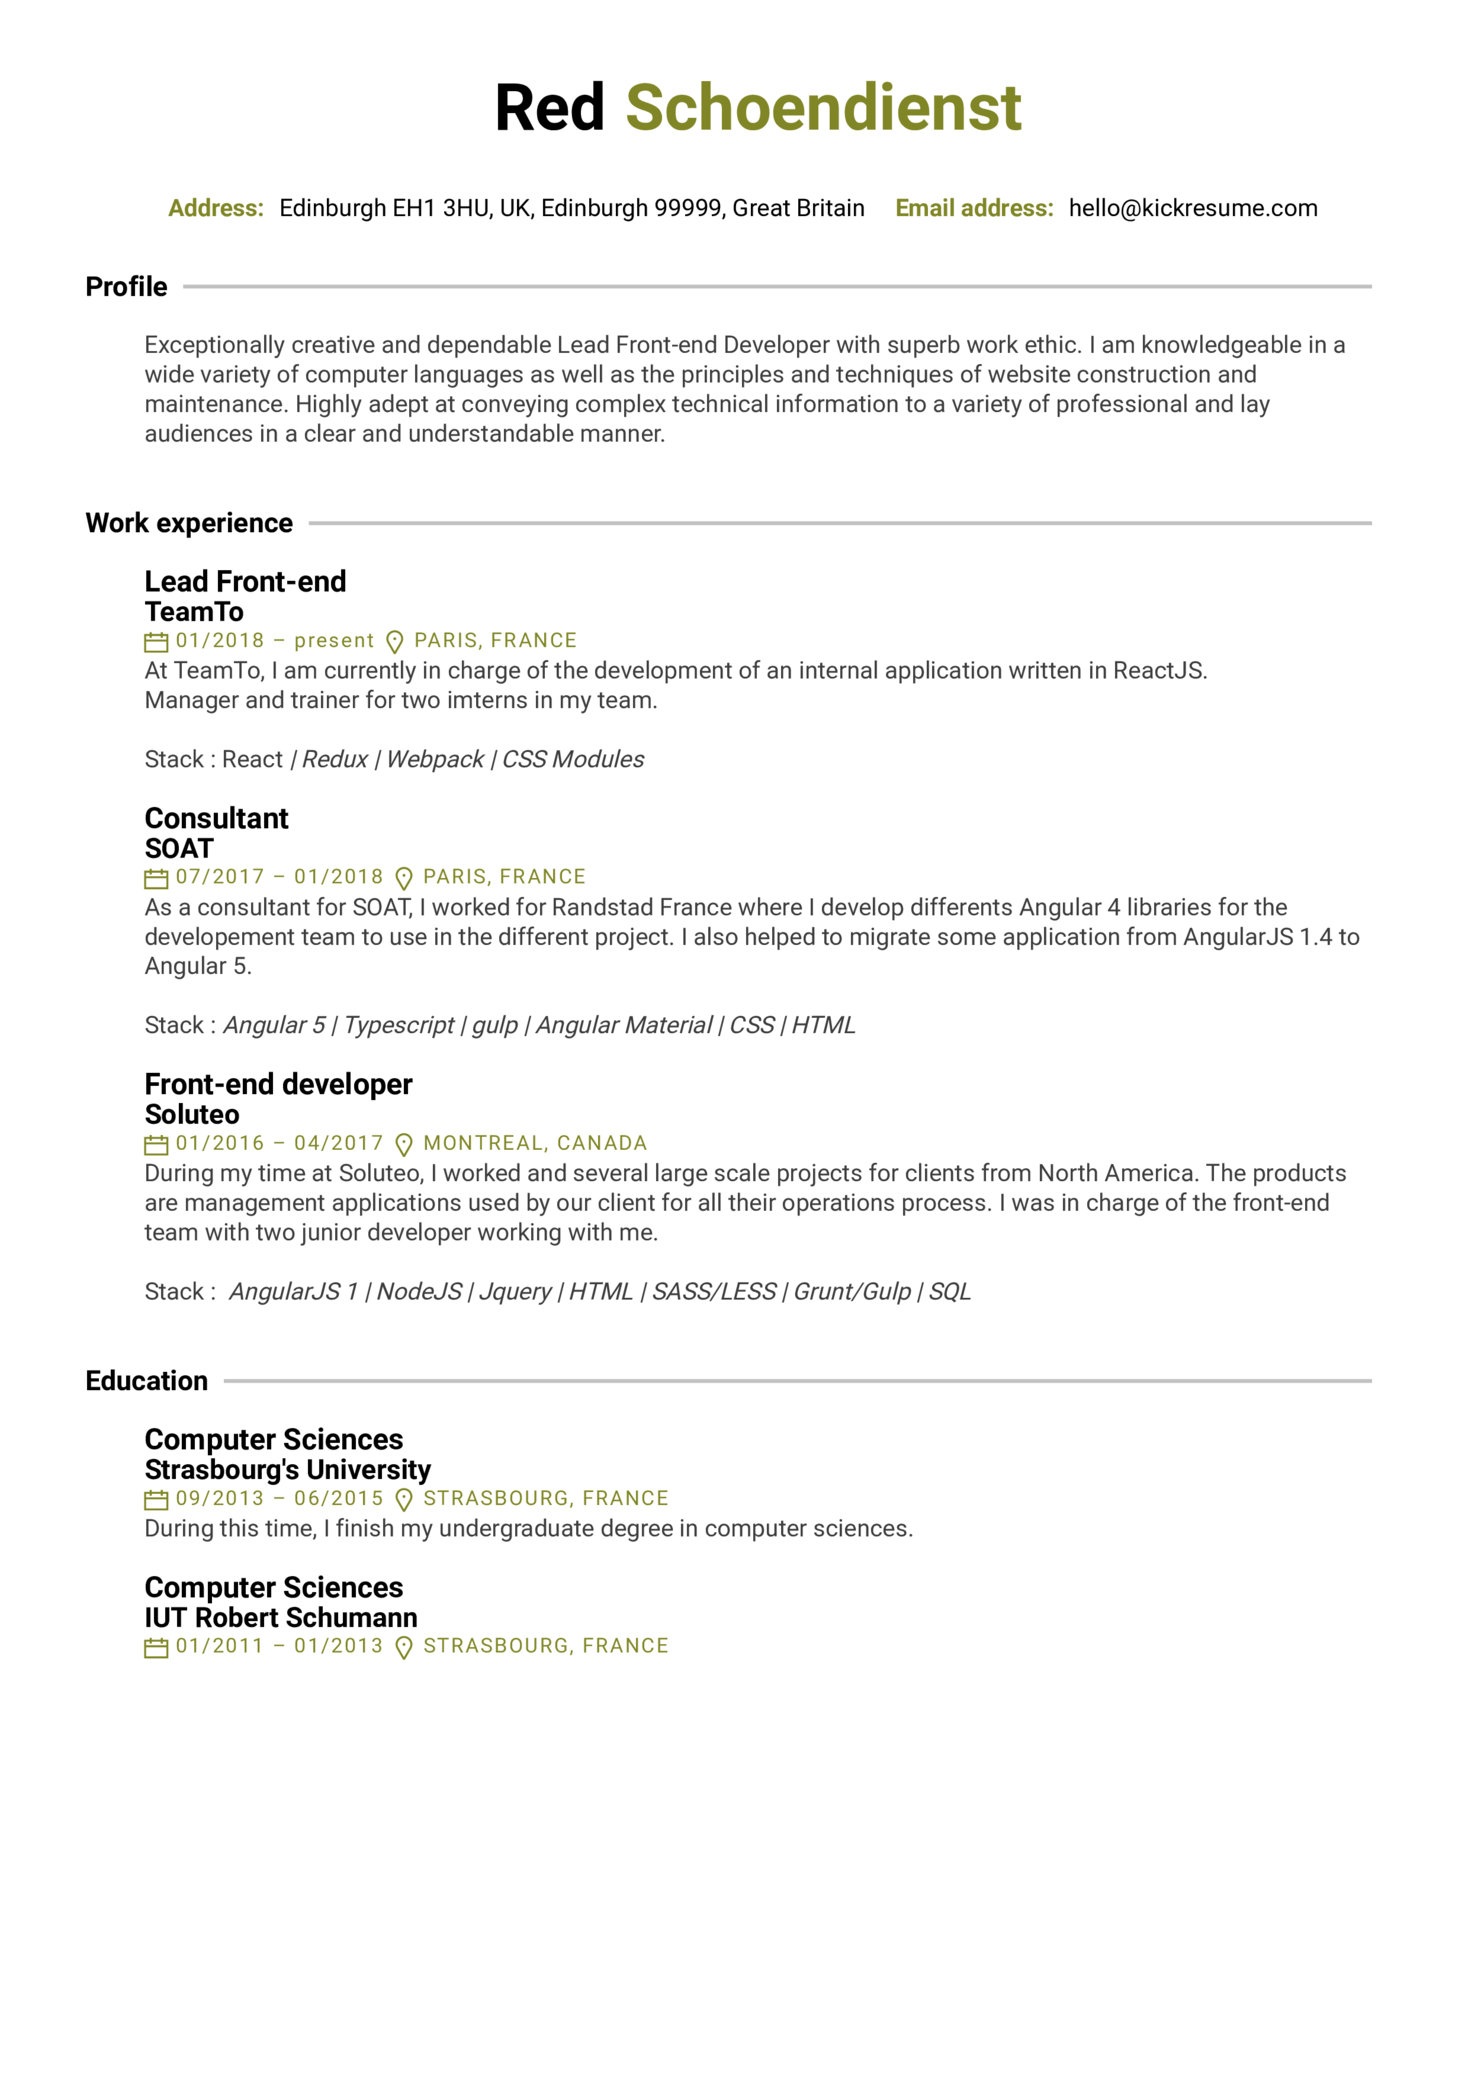 Teamto Lead Front End Developer Cv Sample Kickresume